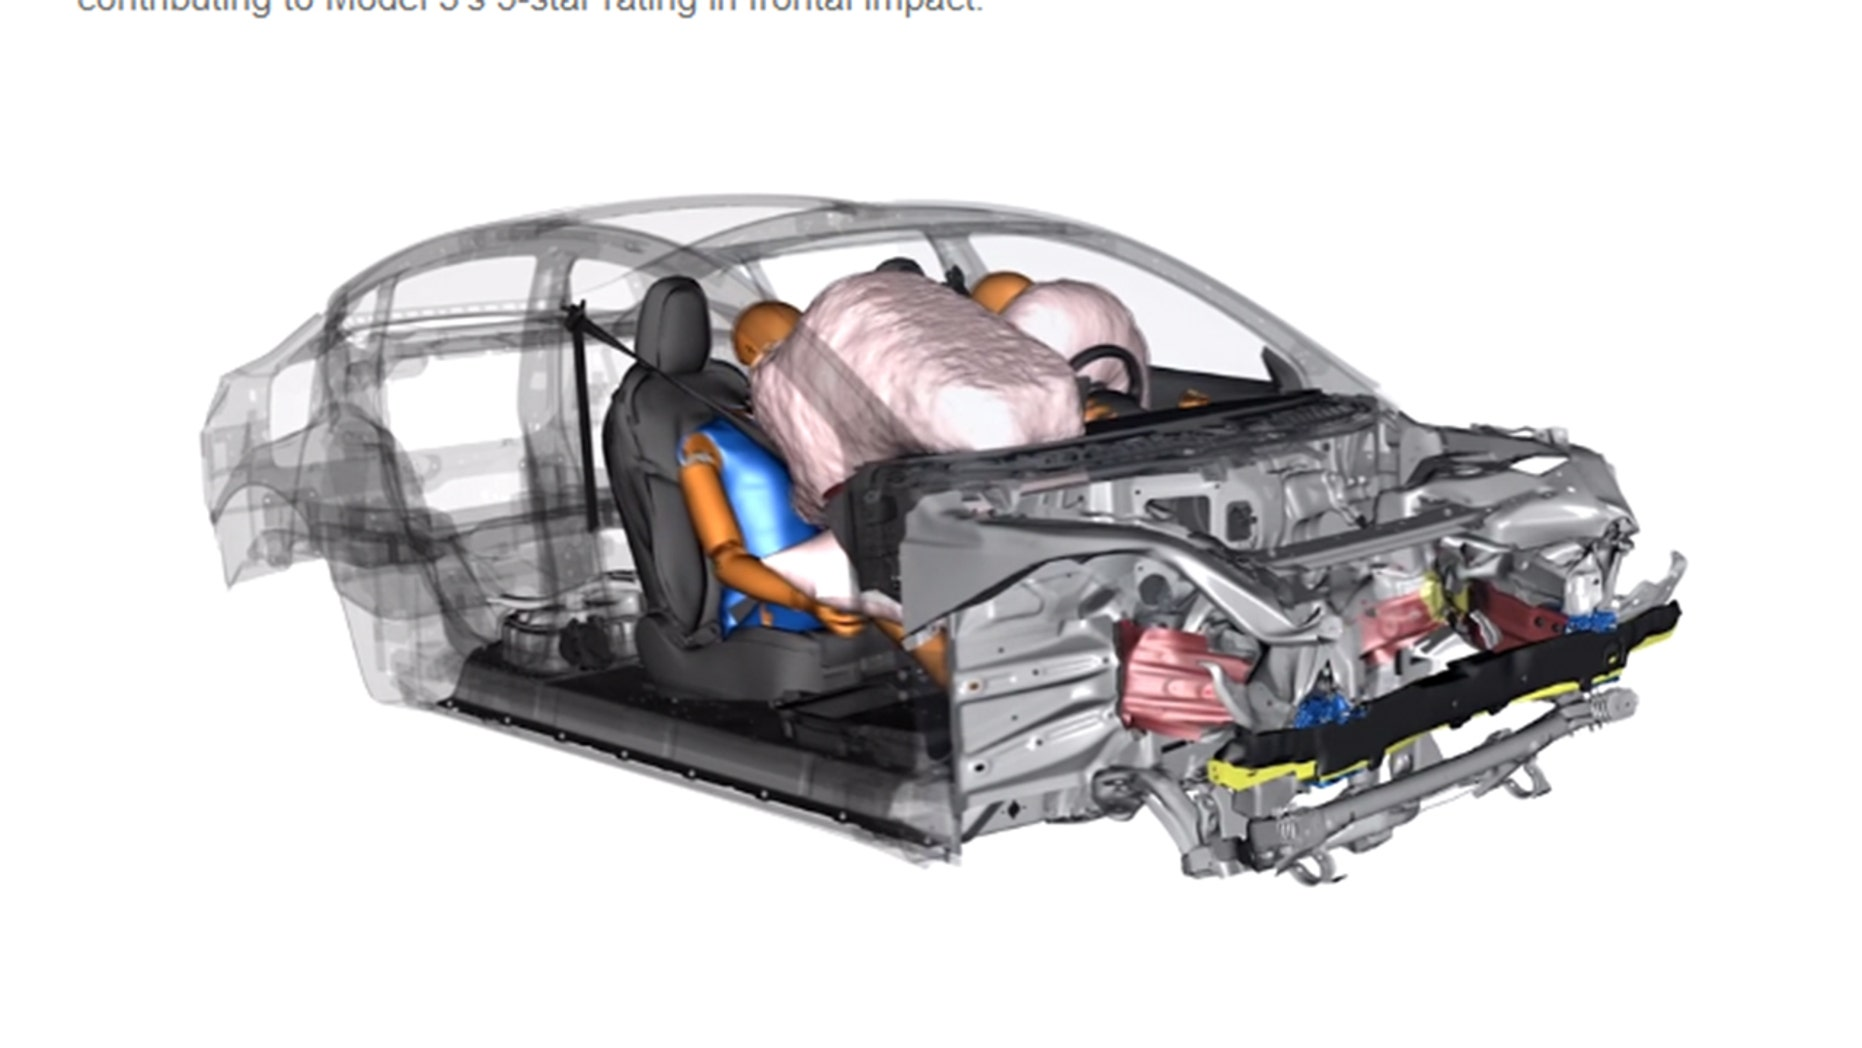 Tesla Released Cad Animations Of Model 3 Crash Tests To Ilrate Its Ysis